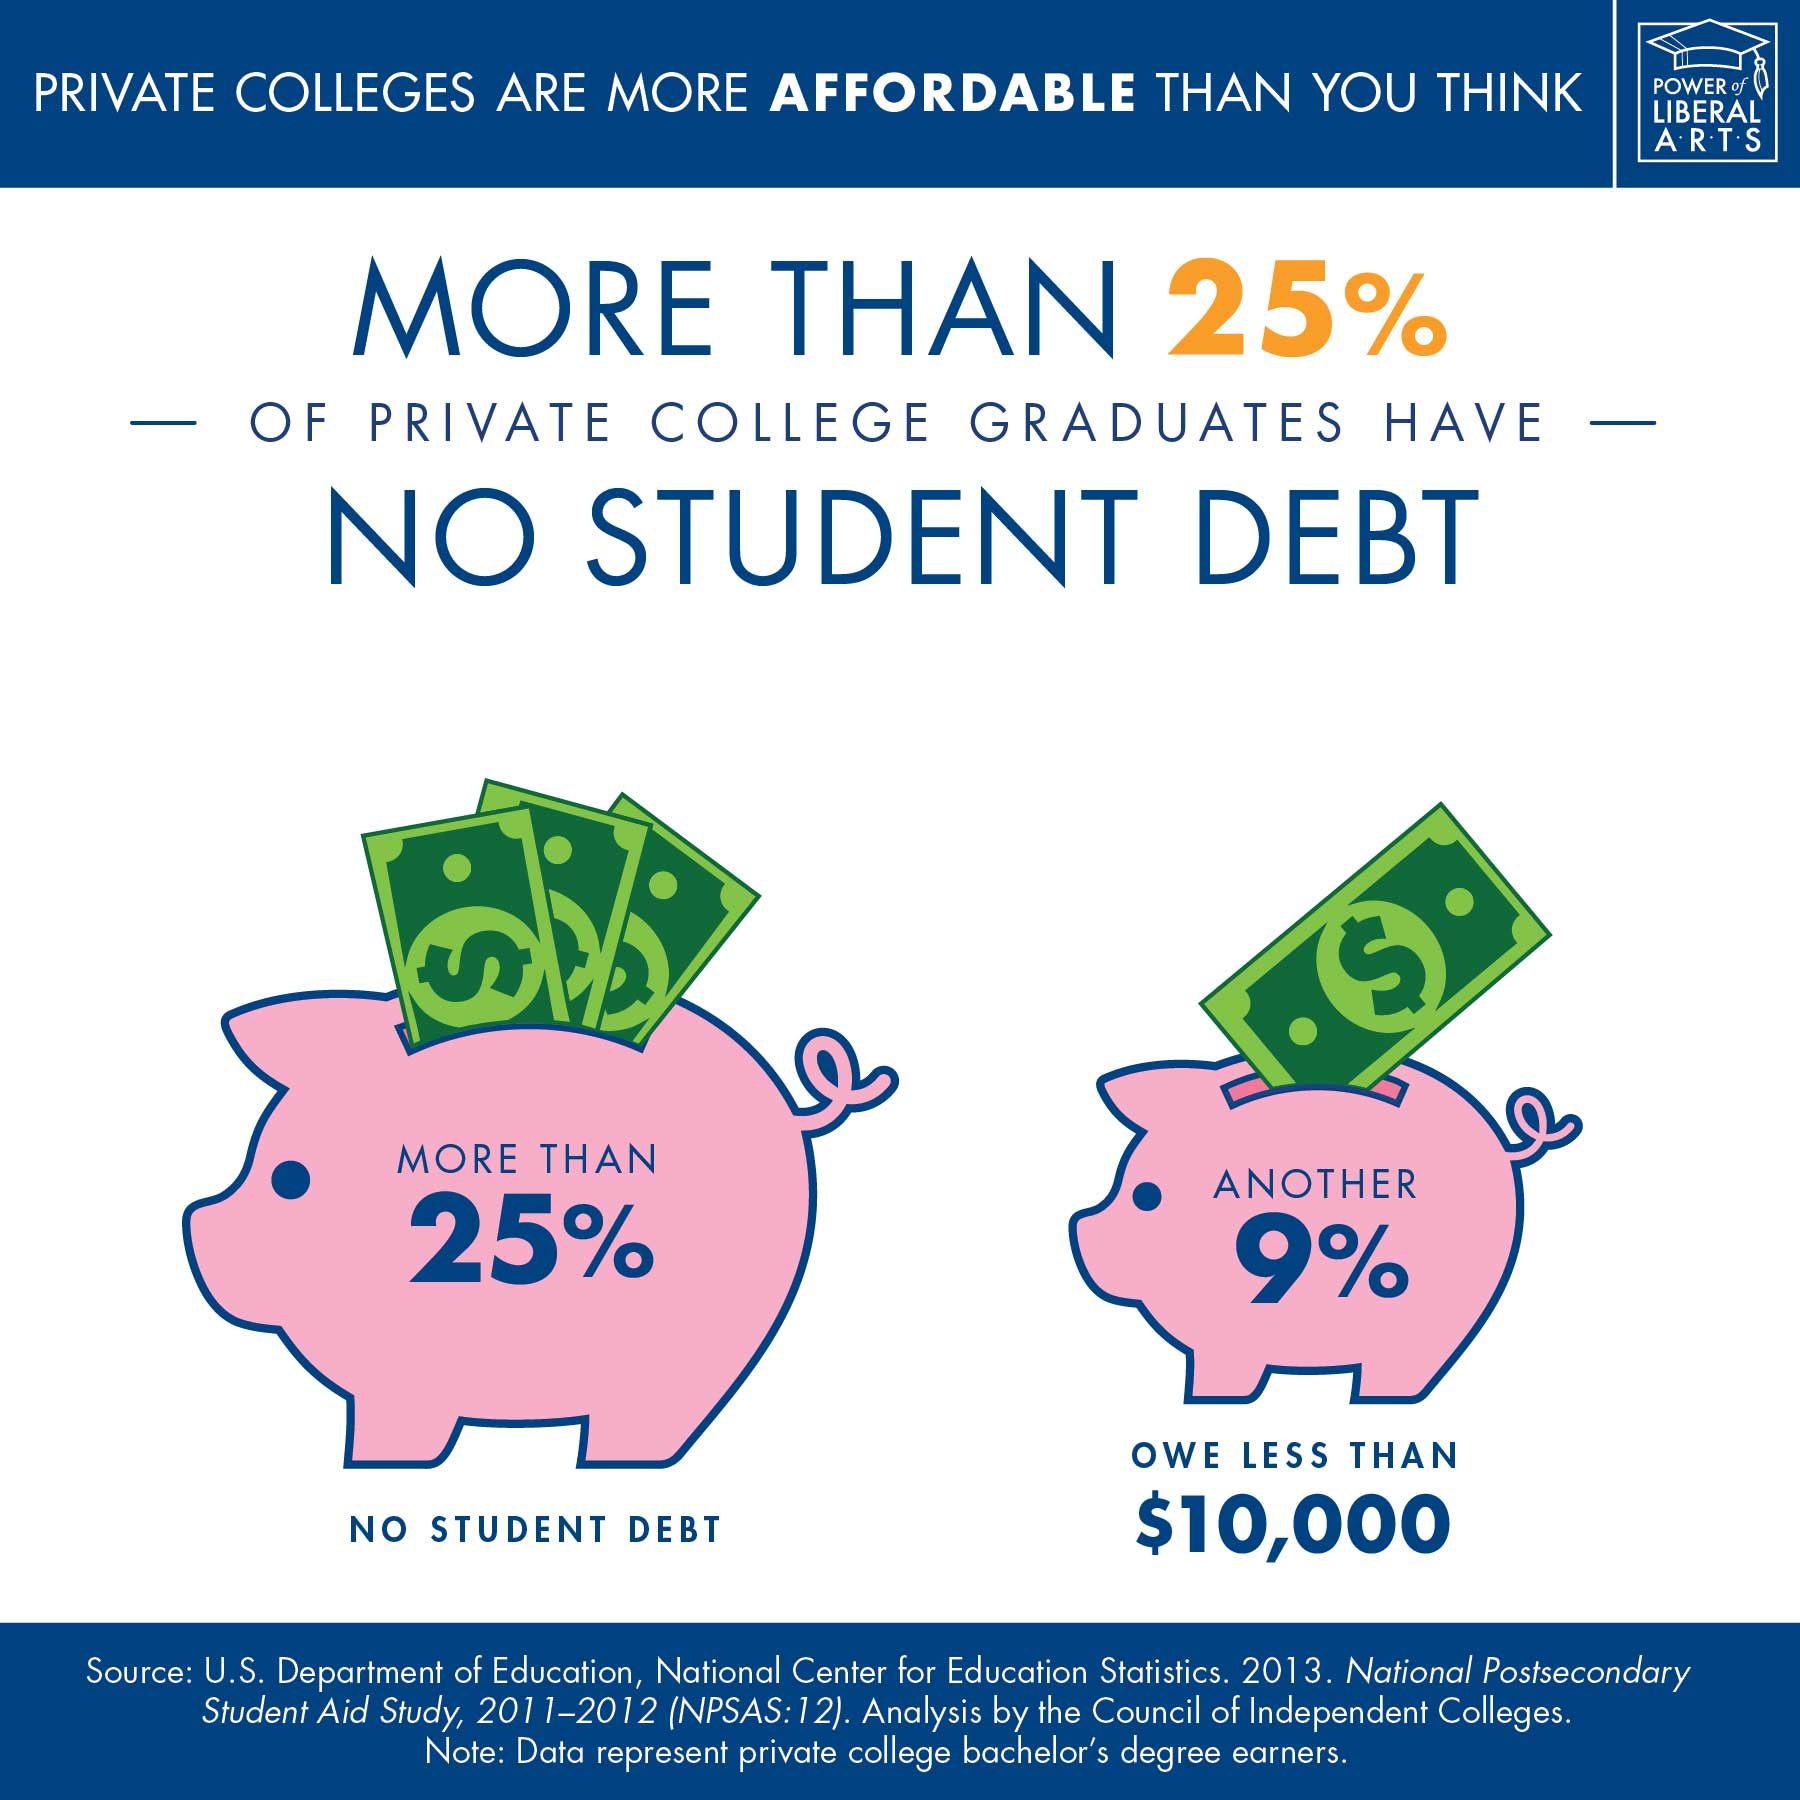 Infographic: More than 25% of private college graduates have no student debt